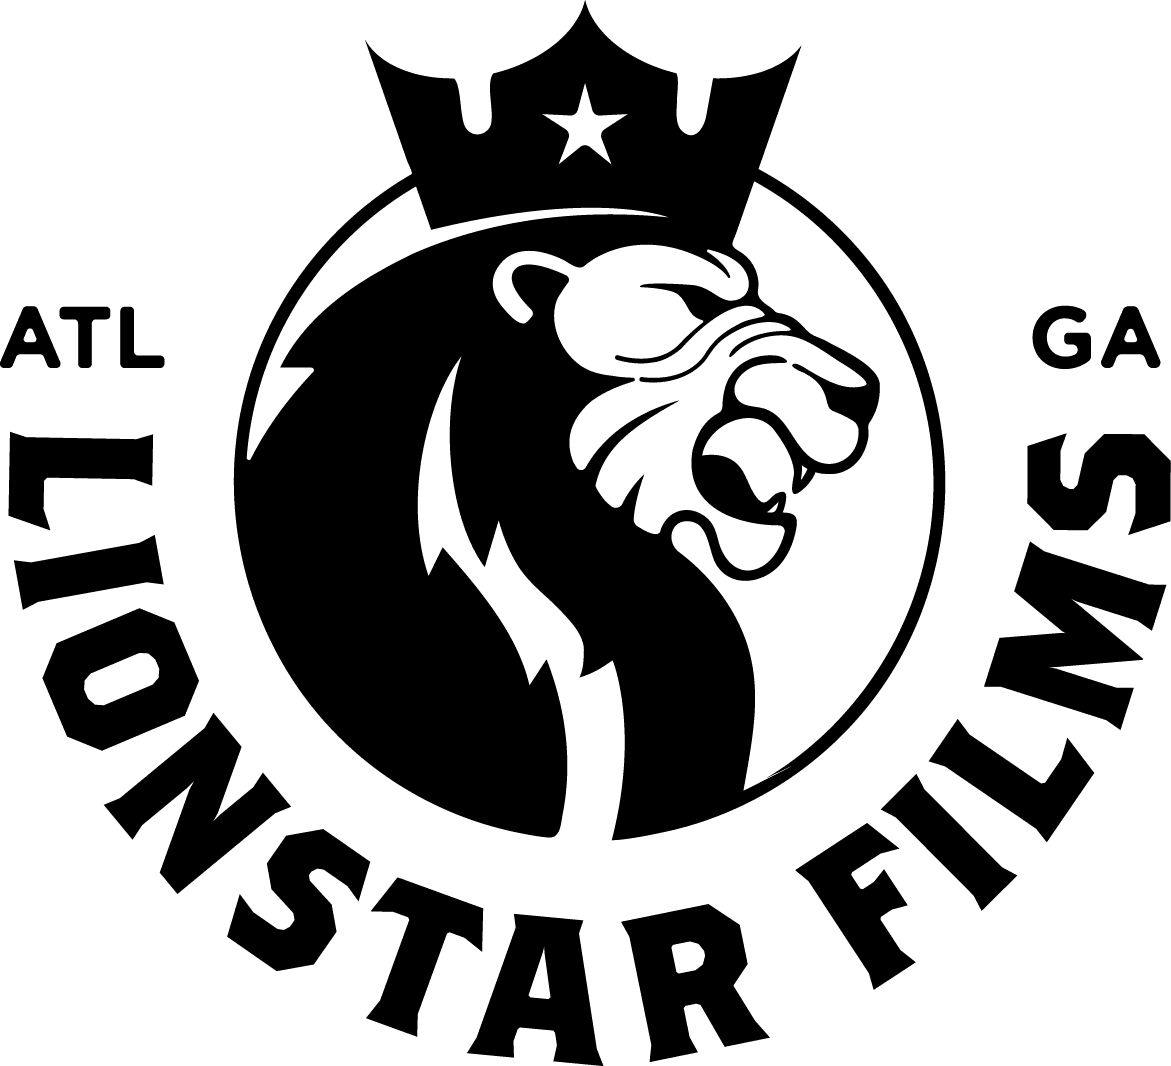 https://atlantaadclub.org/wp-content/uploads/2018/09/LIONSTAR_LOGO_SIMPLE_ATL.png